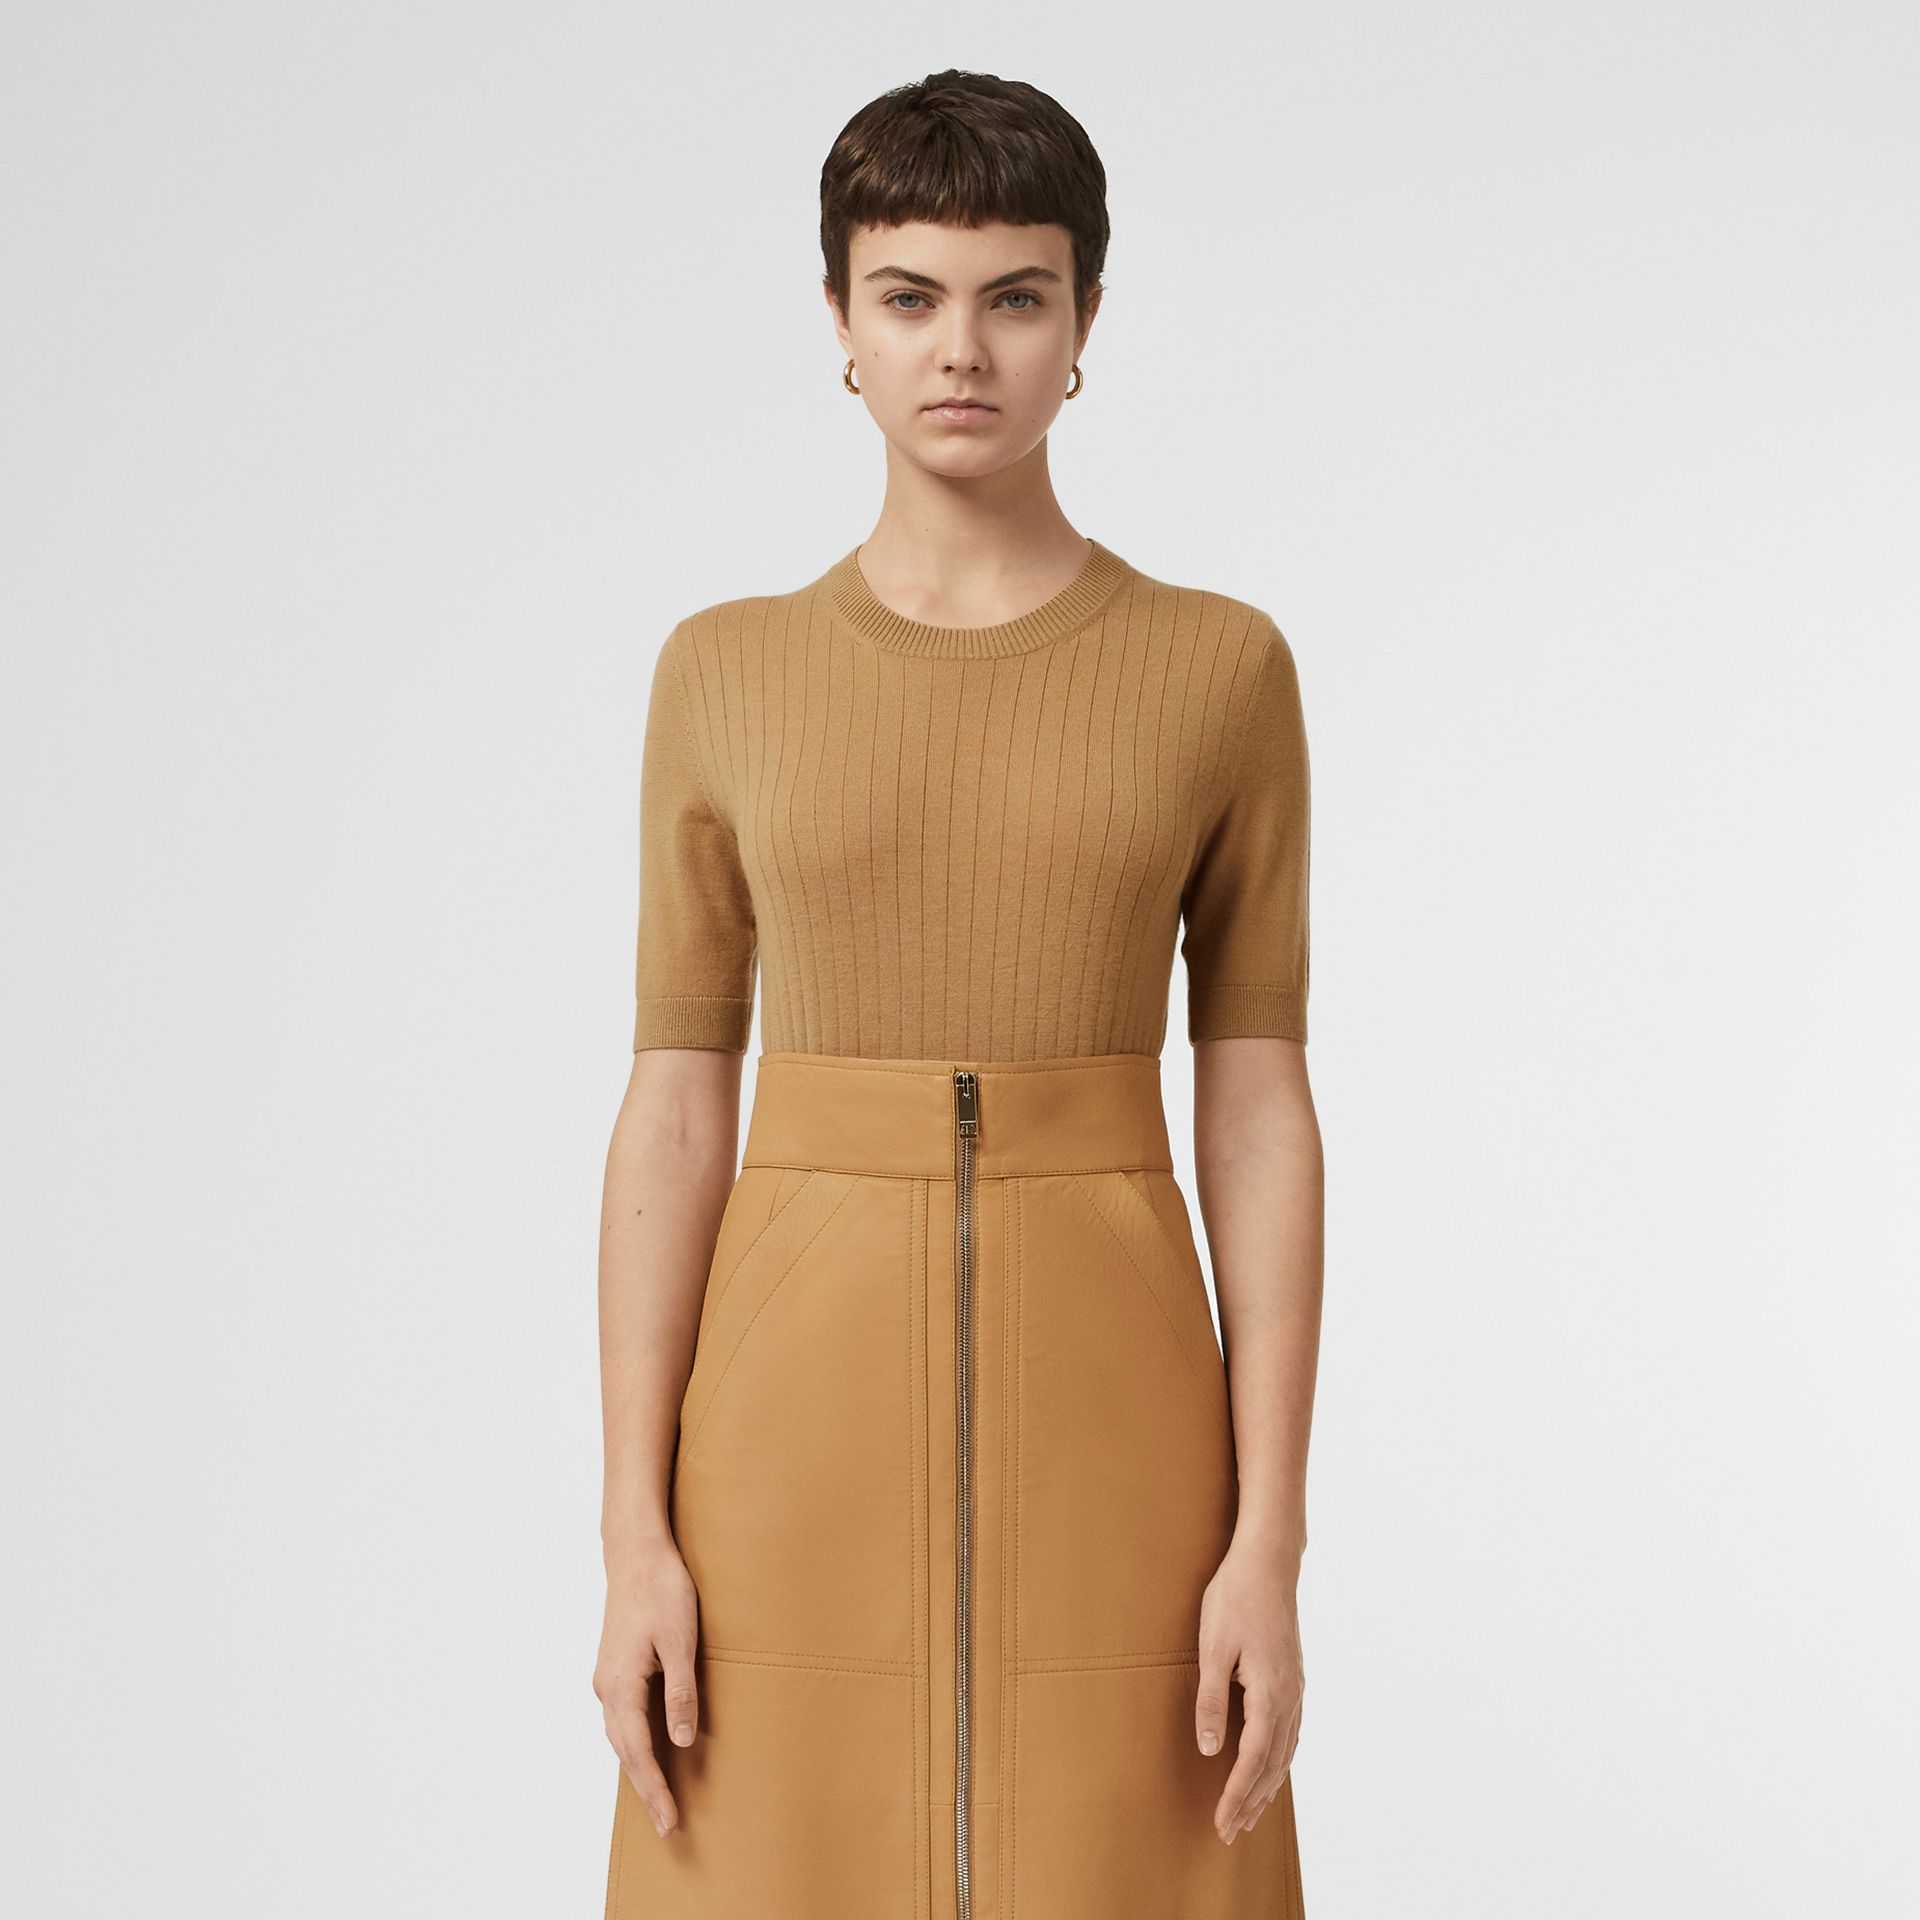 Short-sleeve Rib Knit Cashmere Sweater in Camel - Women | Burberry United States - gallery image 6